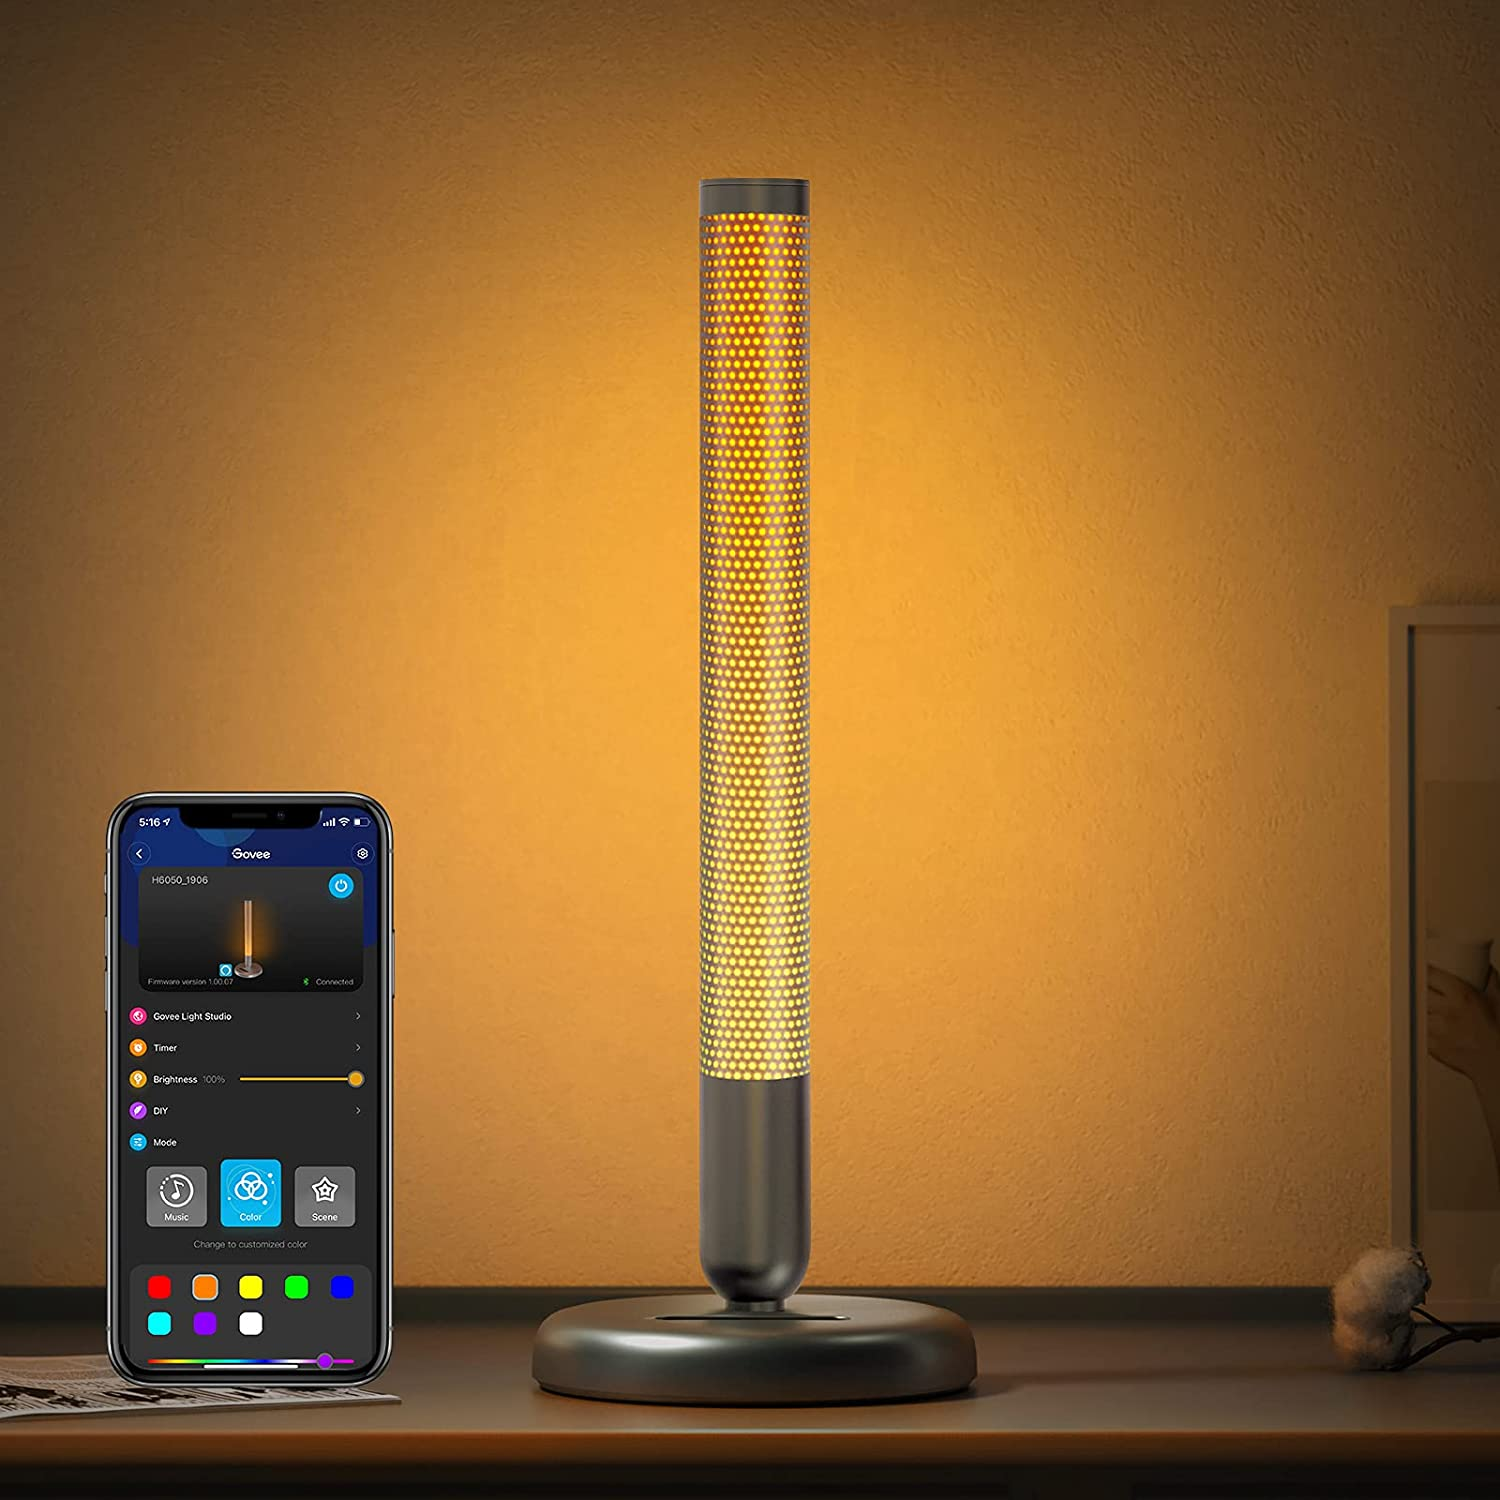 Govee Smart LED Bedside Lamp, RGBWW Dimmable Modern Lamp Works with Alexa, Google Assistant, APP and Touch Buttons Control, Atmosphere Light with 20 Scene Modes for Bedroom, Living Room